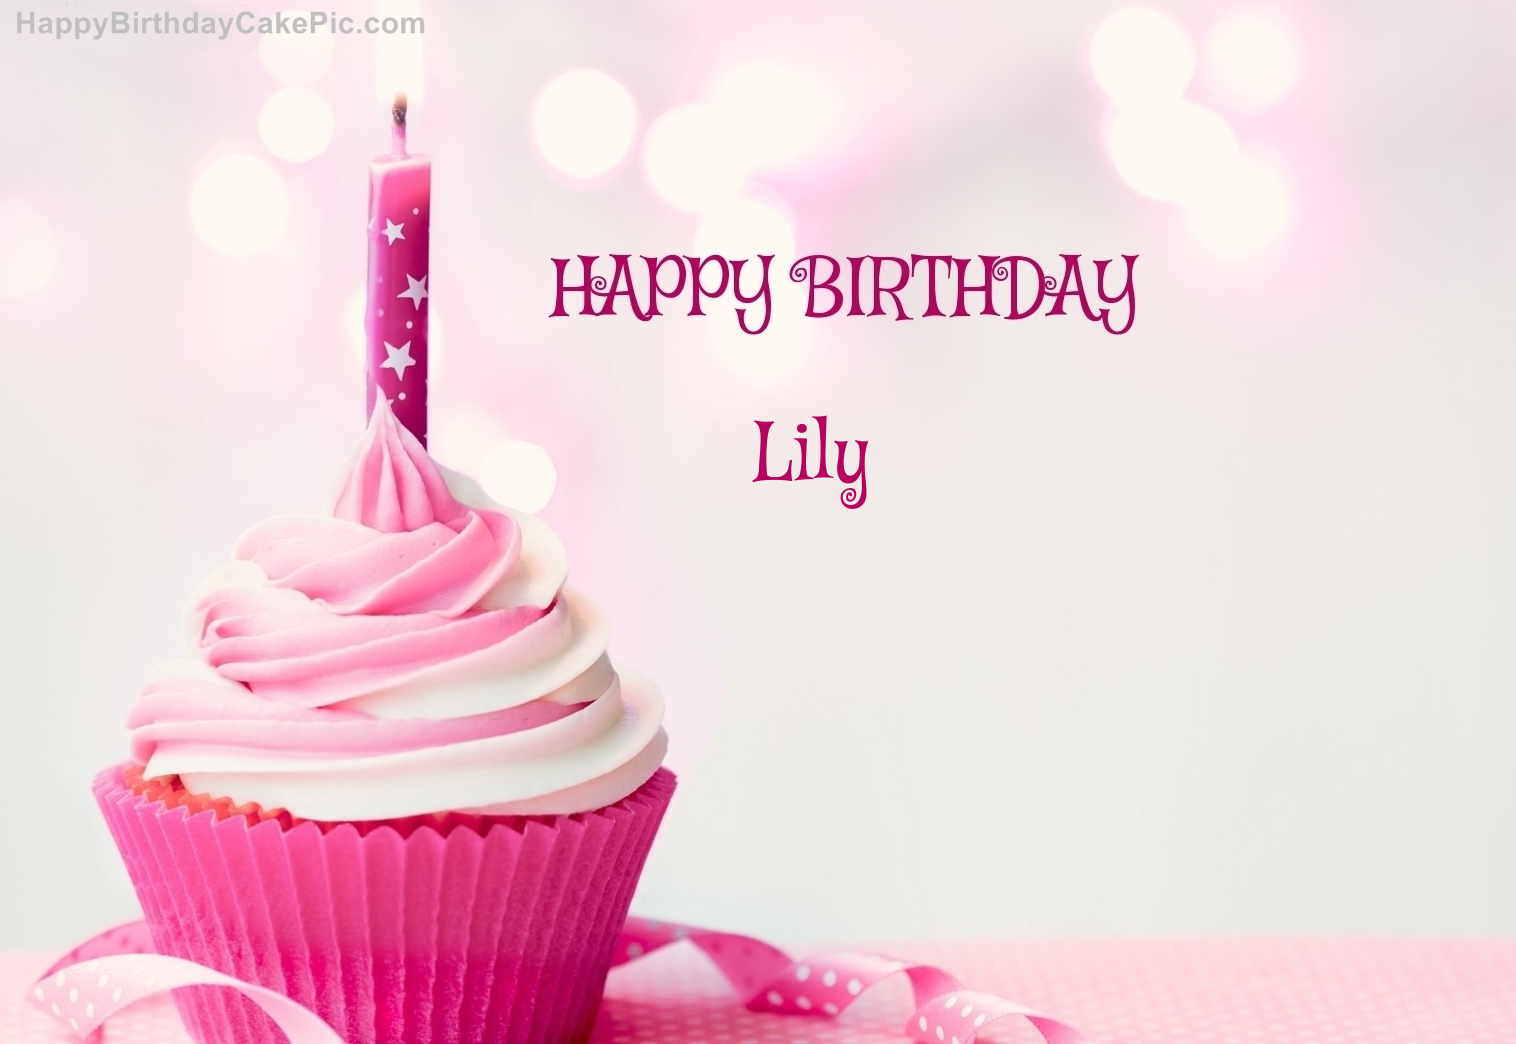 Happy Birthday Cupcake Candle Pink Cake For Lily